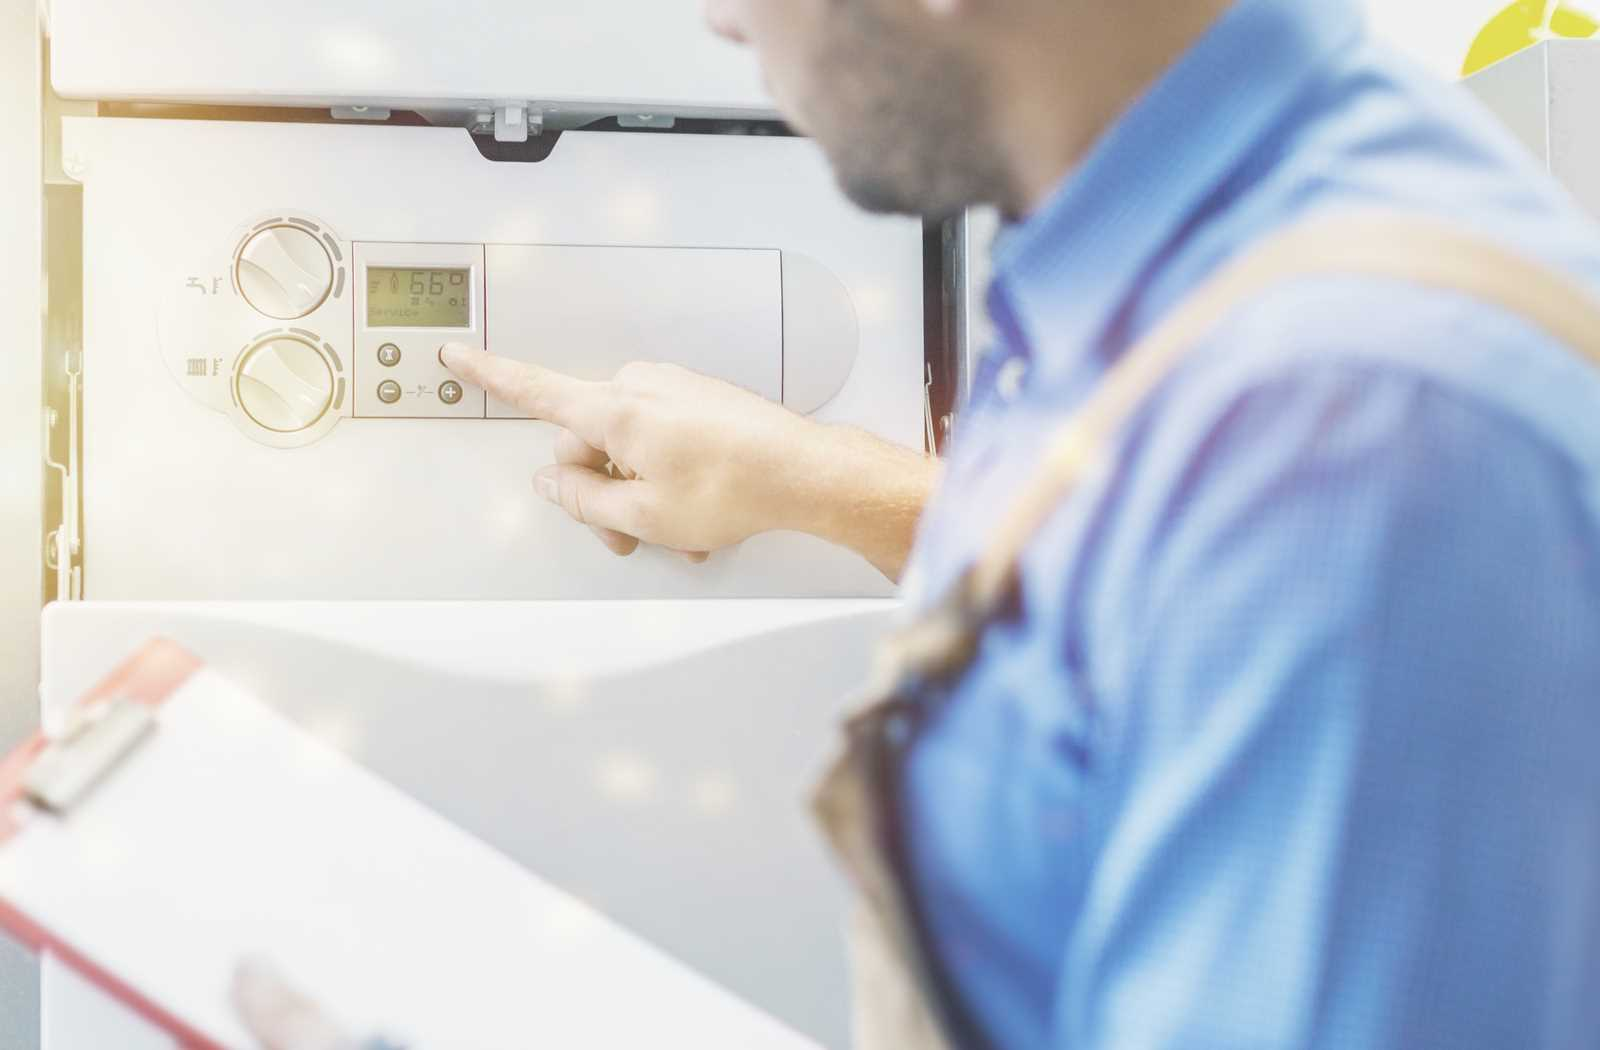 Technician adjusting the settings on a water heater